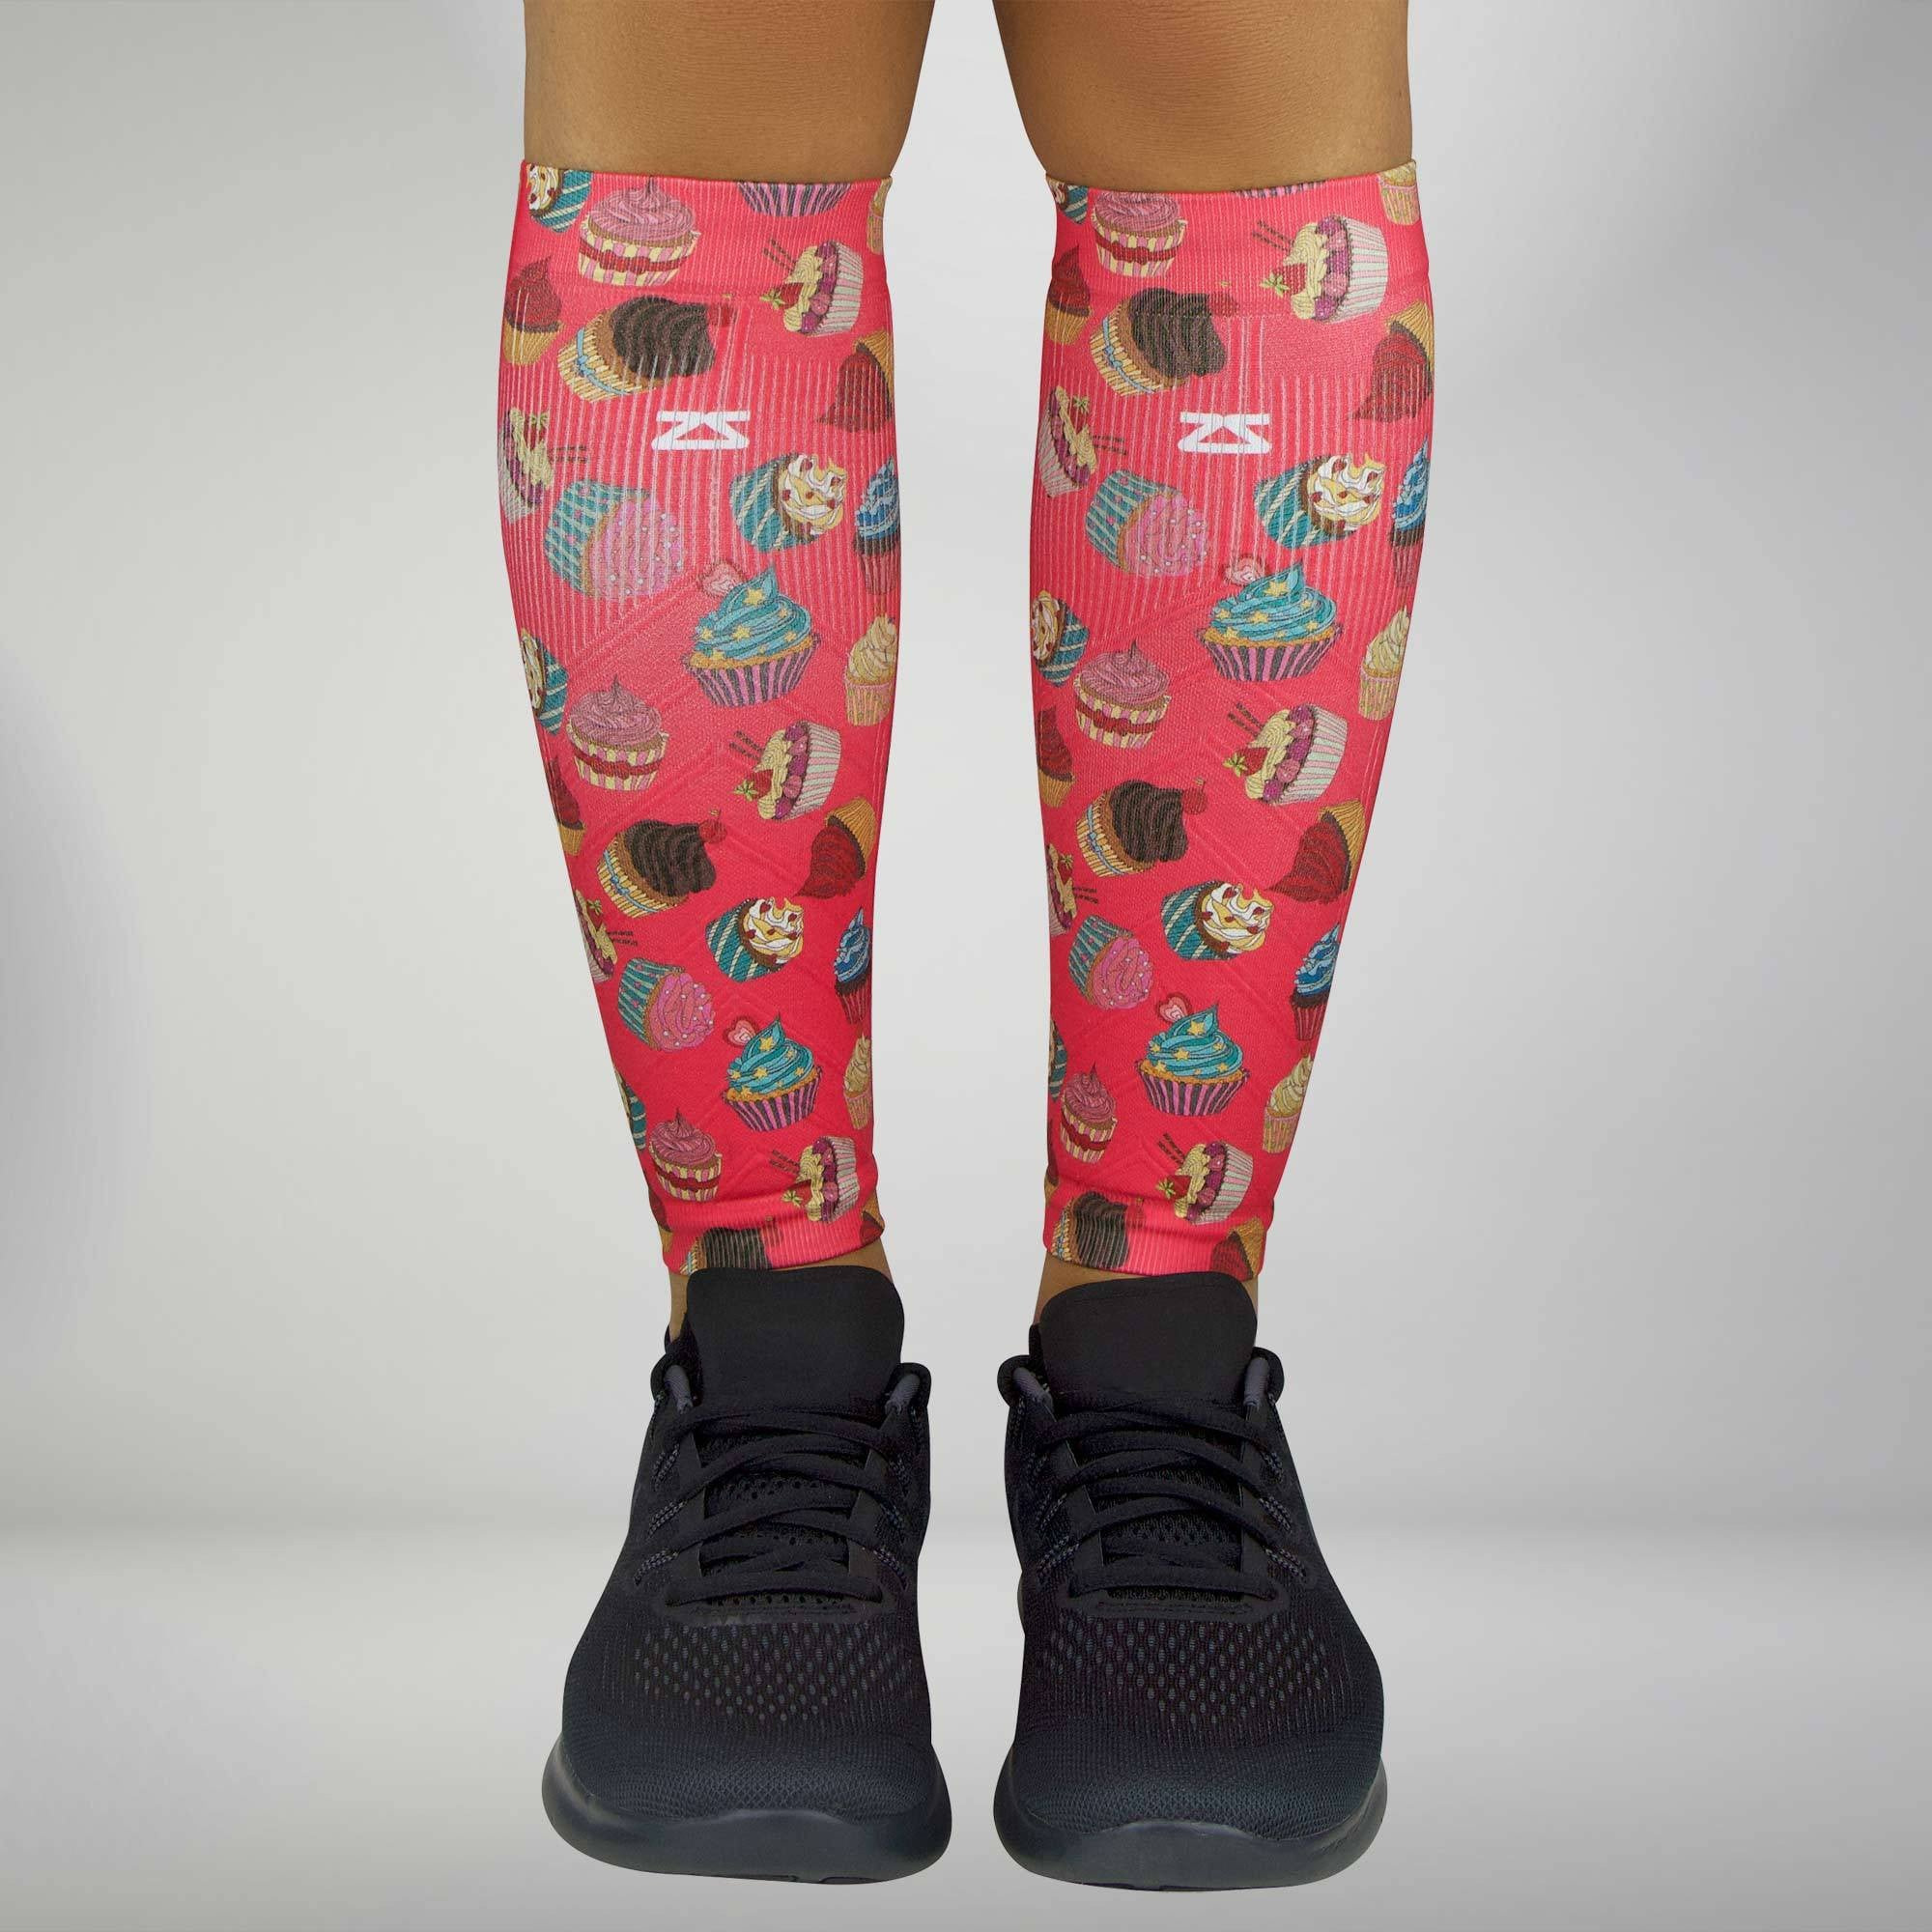 Cupcakes Compression Leg Sleeves